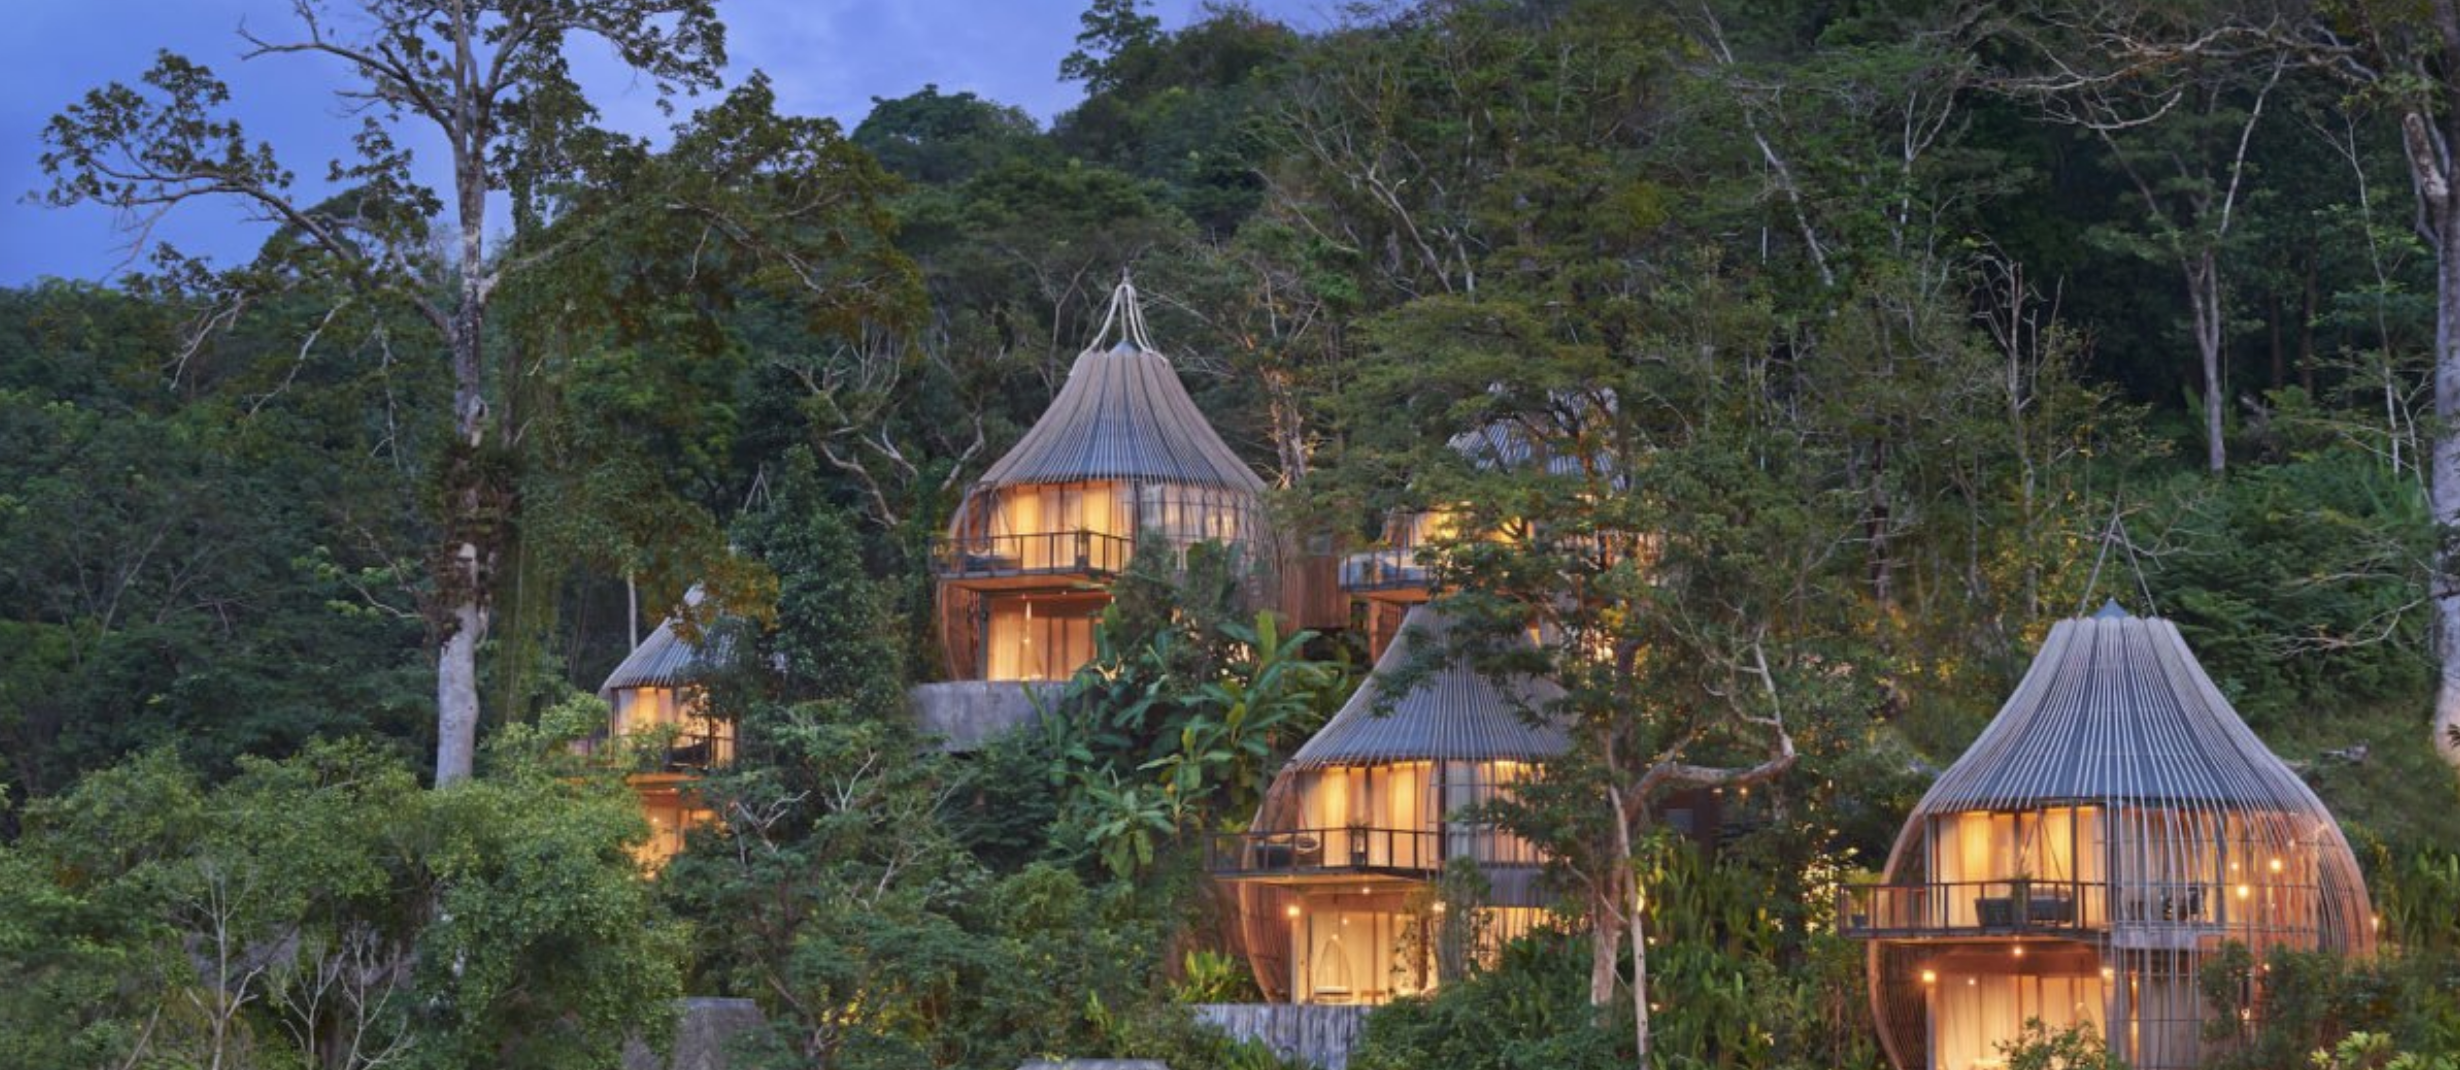 Check out Green Pearls post featuring  Keemala Hotel , which is located amidst the forests of Kamala on the peninsula Phuket in Thailand.